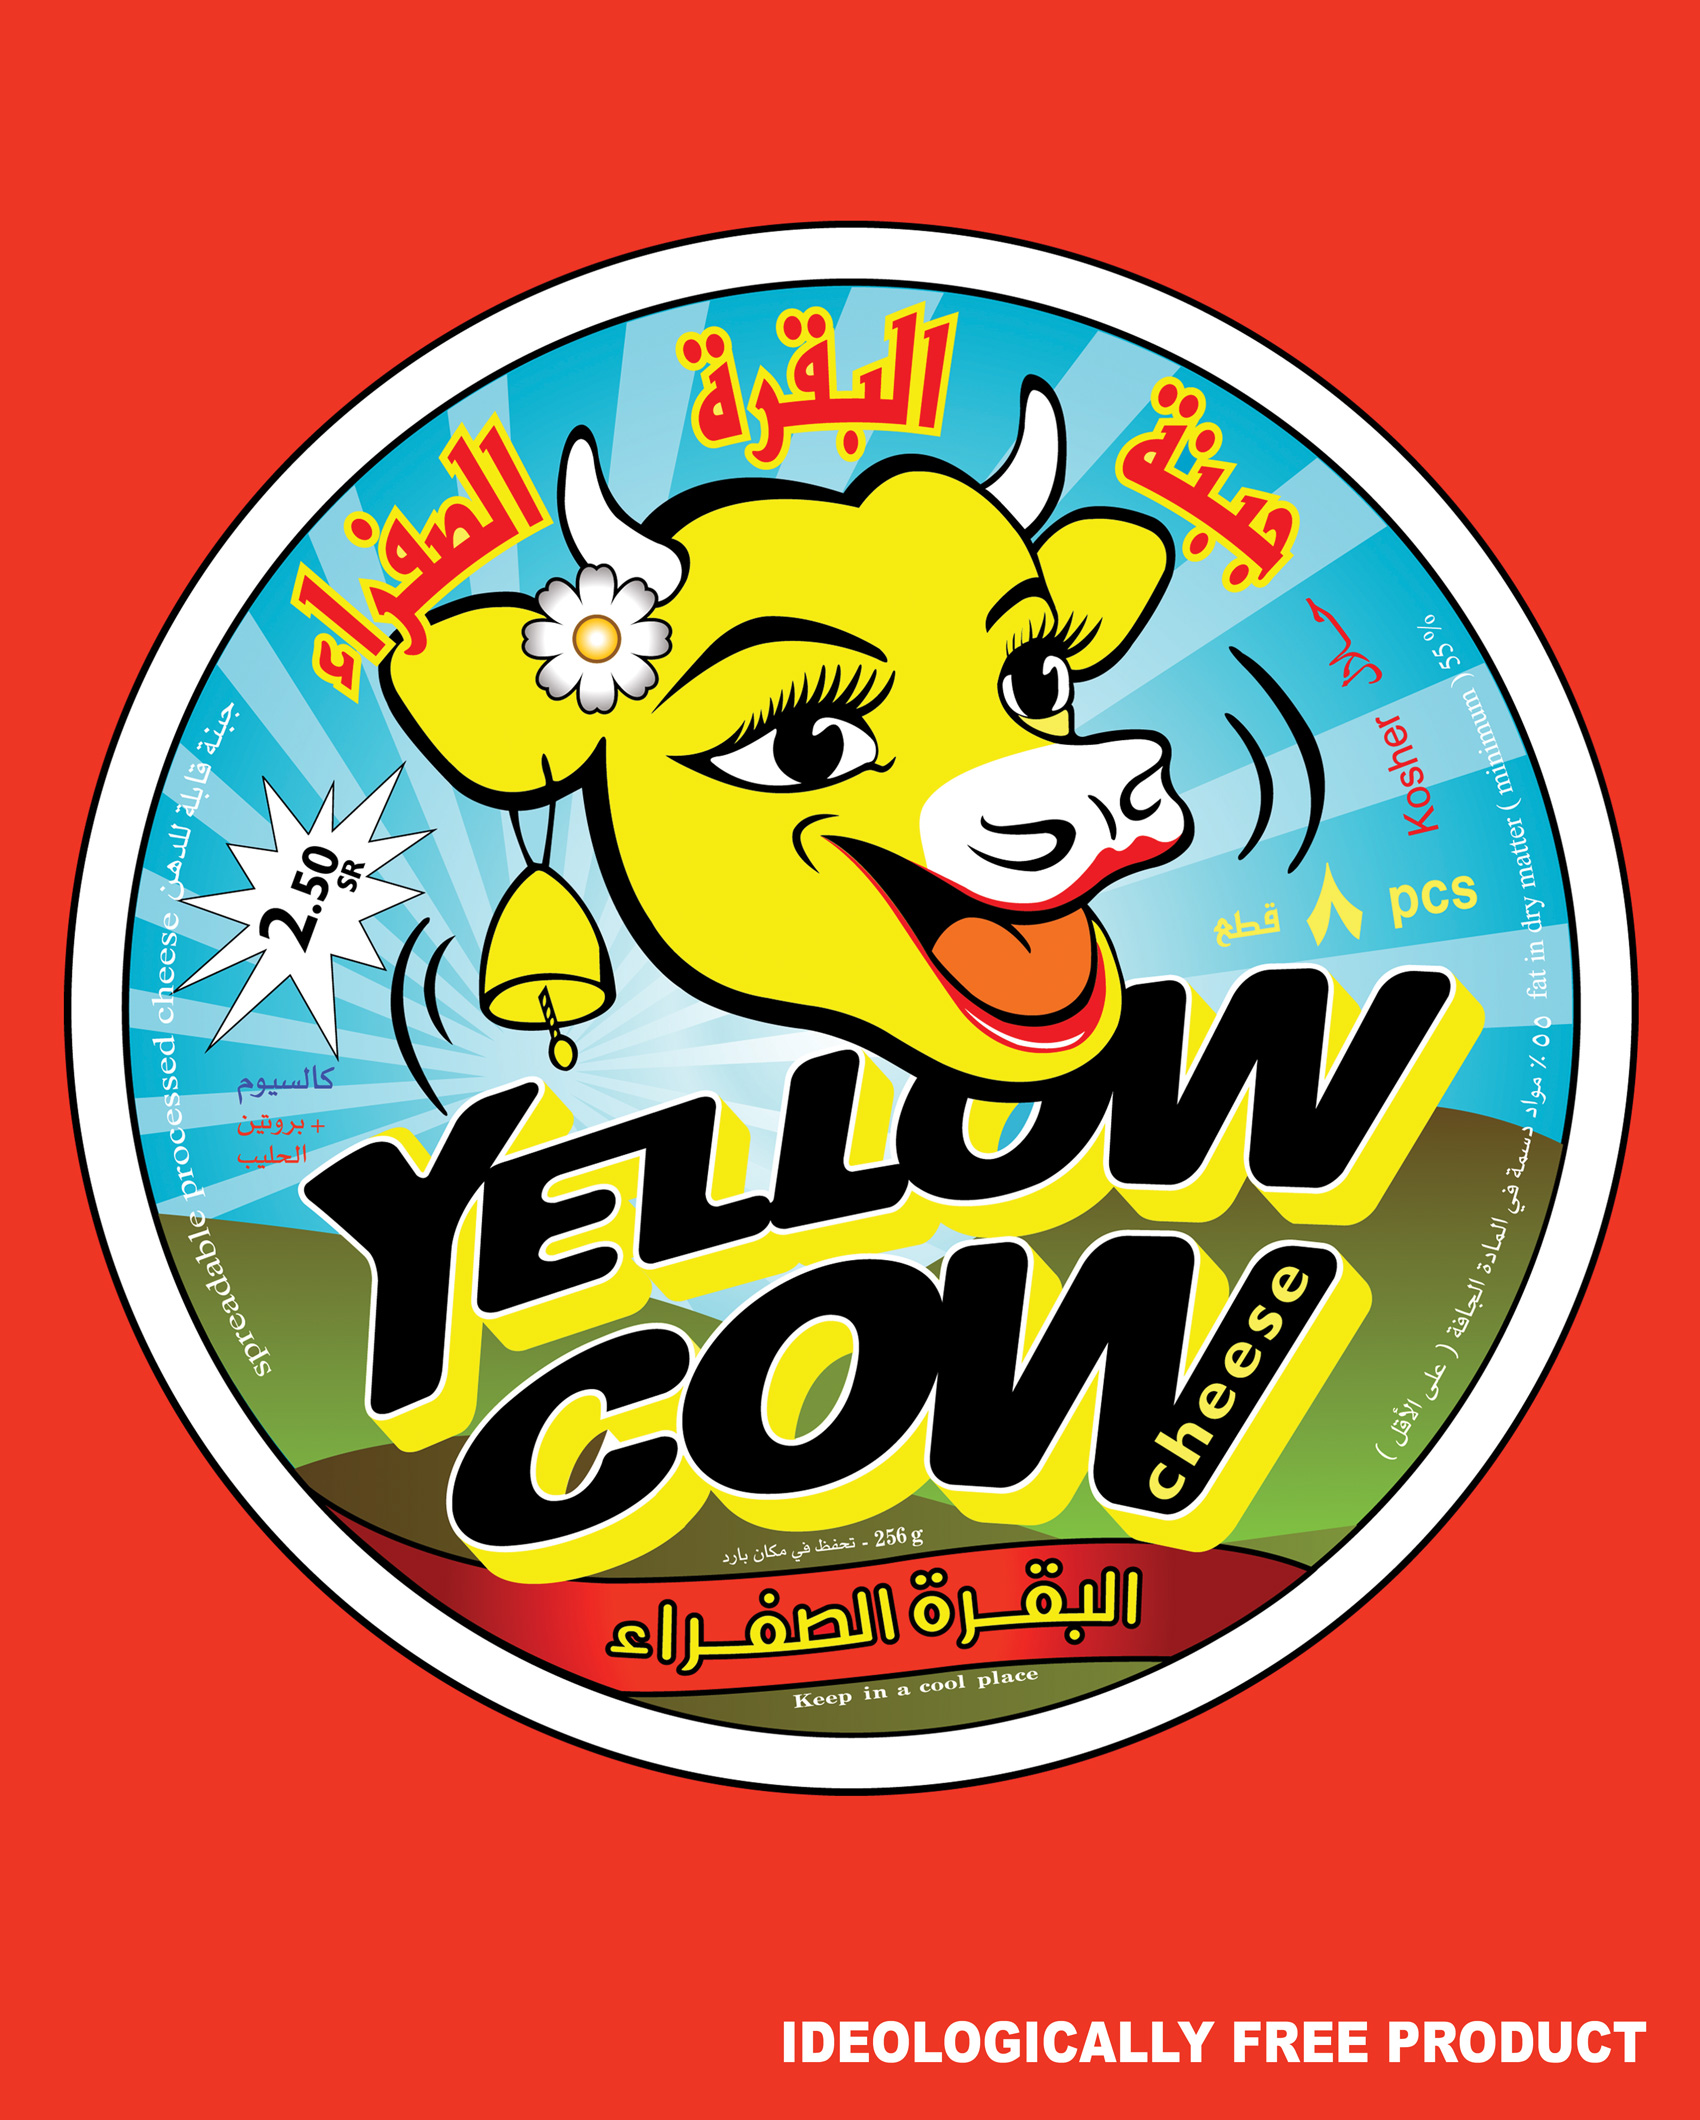 'Yellow Cow Red' (2010), by Ahmed Mater.